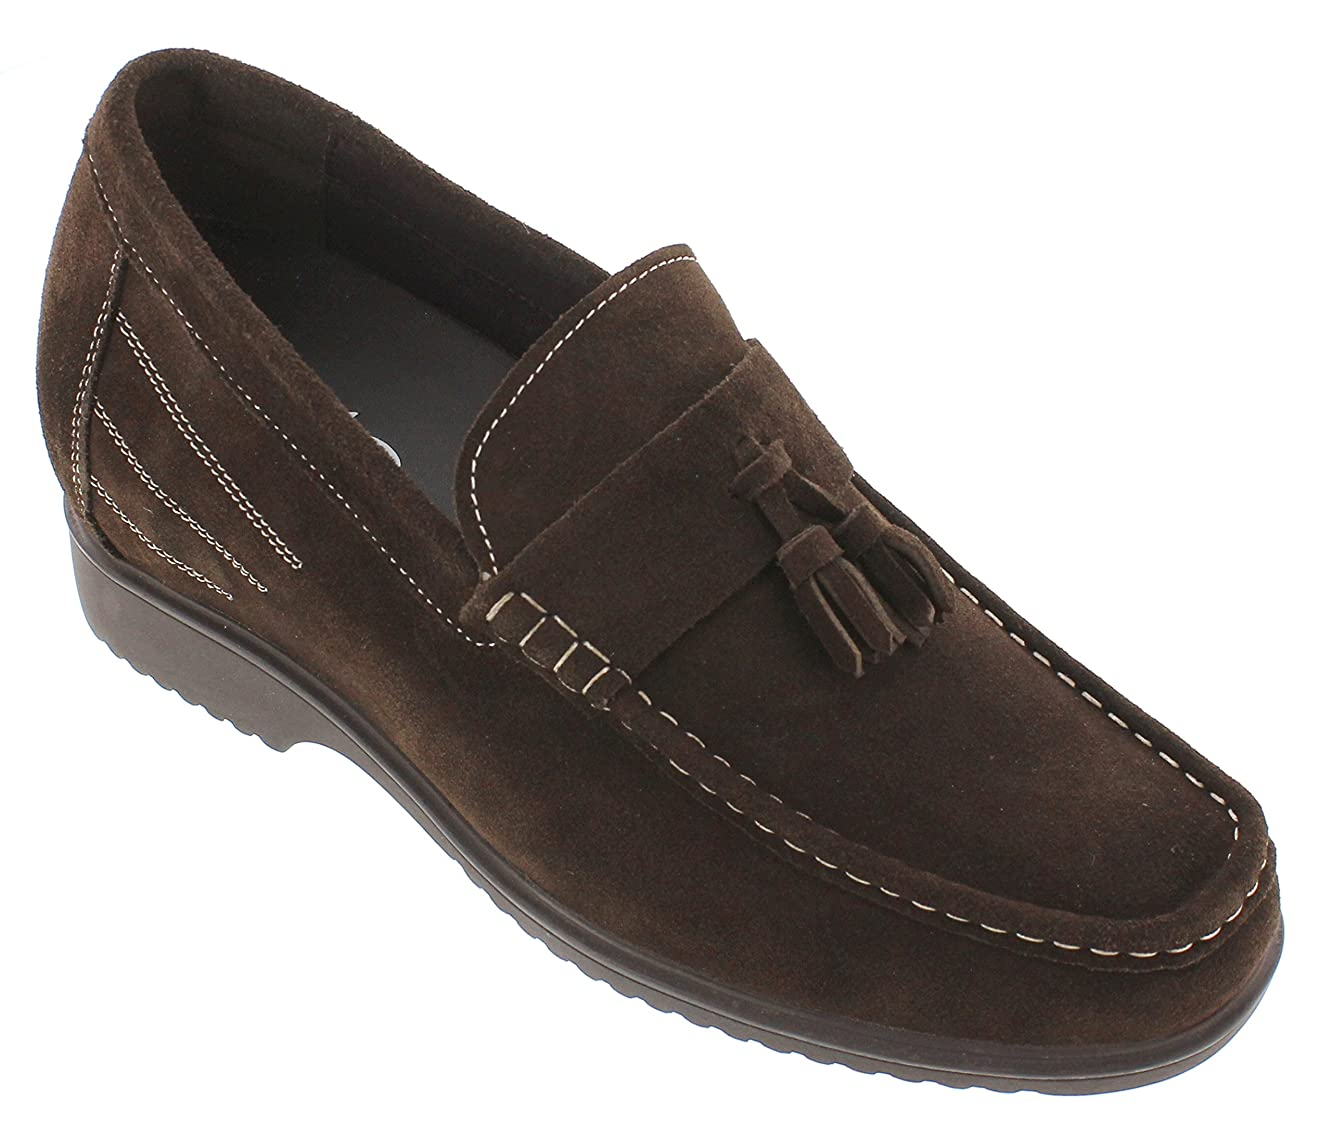 CALTO Men's Invisible Height Increasing Elevator Dress Shoes - Dark Brown Suede Leather Slip-on Formal Tasel Loafers - 3.3 Inches Taller - G61211